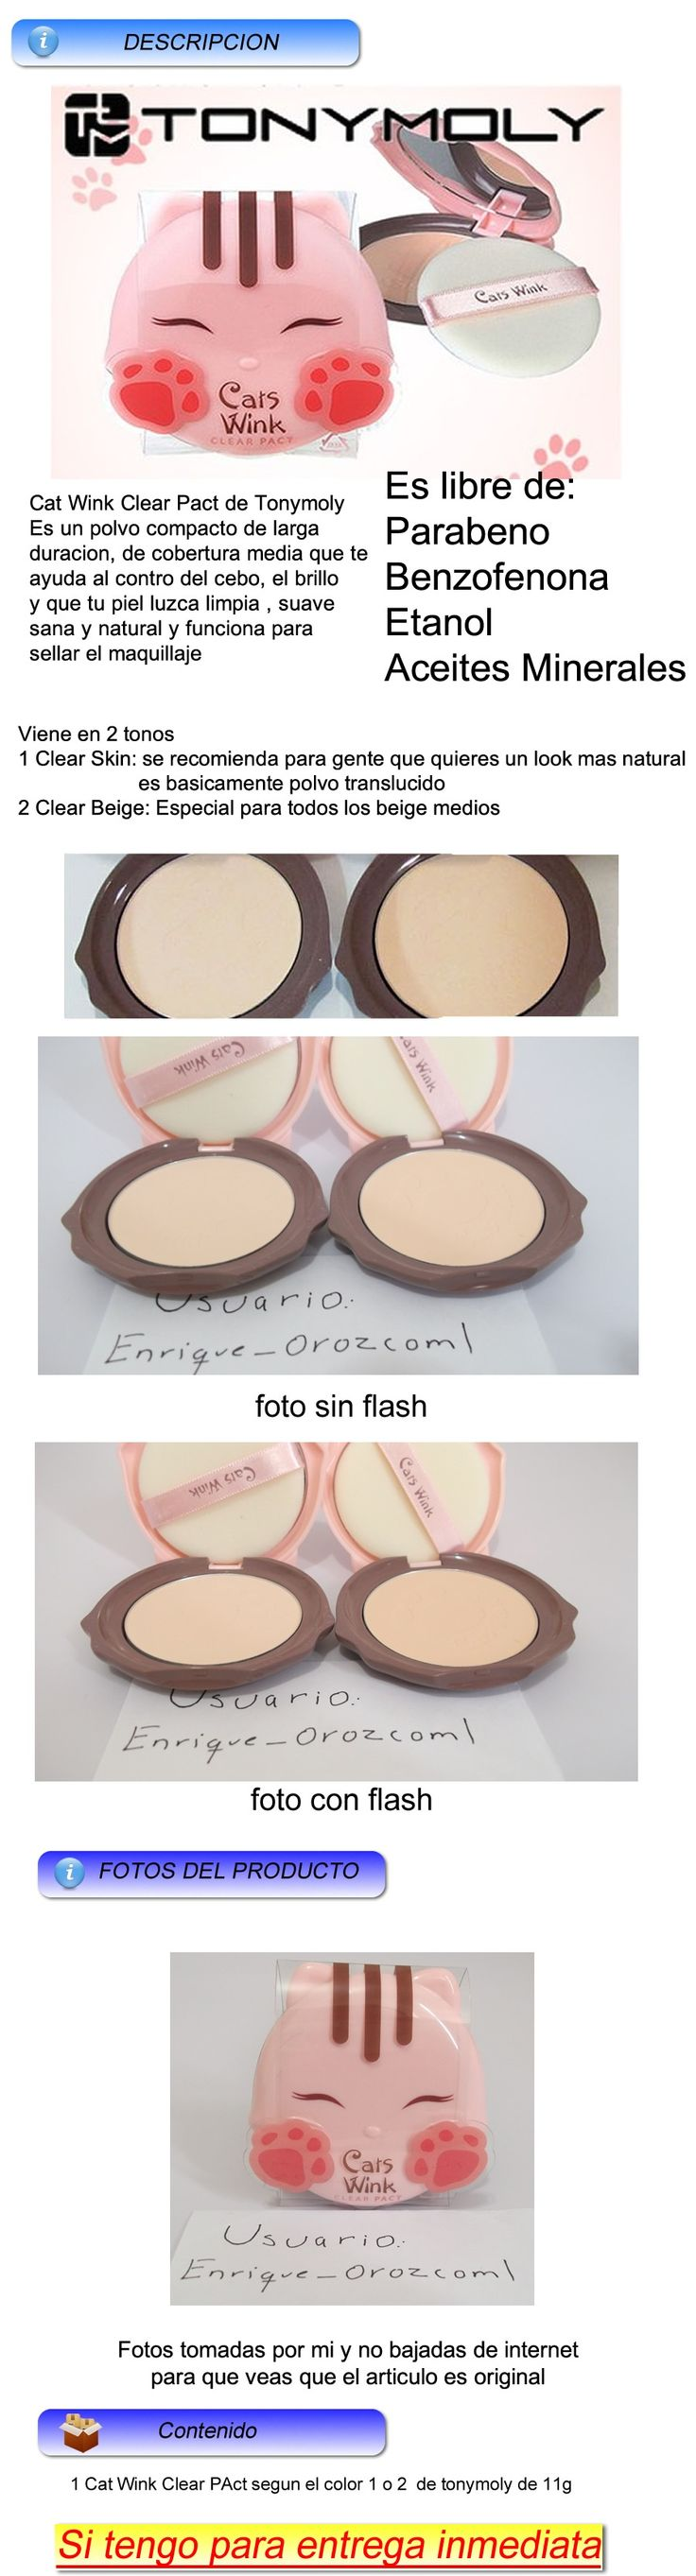 Tonymoly Cats Wink Clear Pact Polvo Compacto Maquillaje - $ 199.00 en MercadoLibre